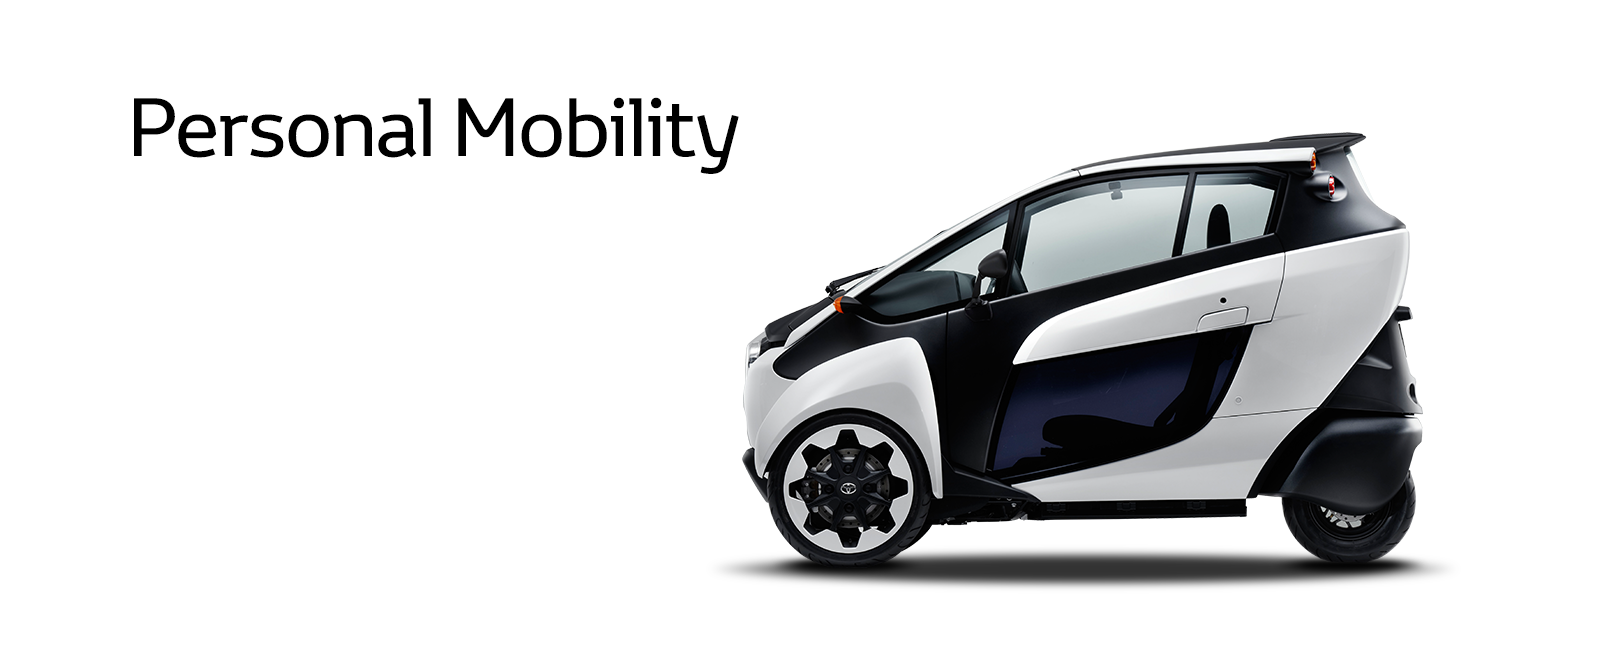 Toyota Global Site Personal Mobility